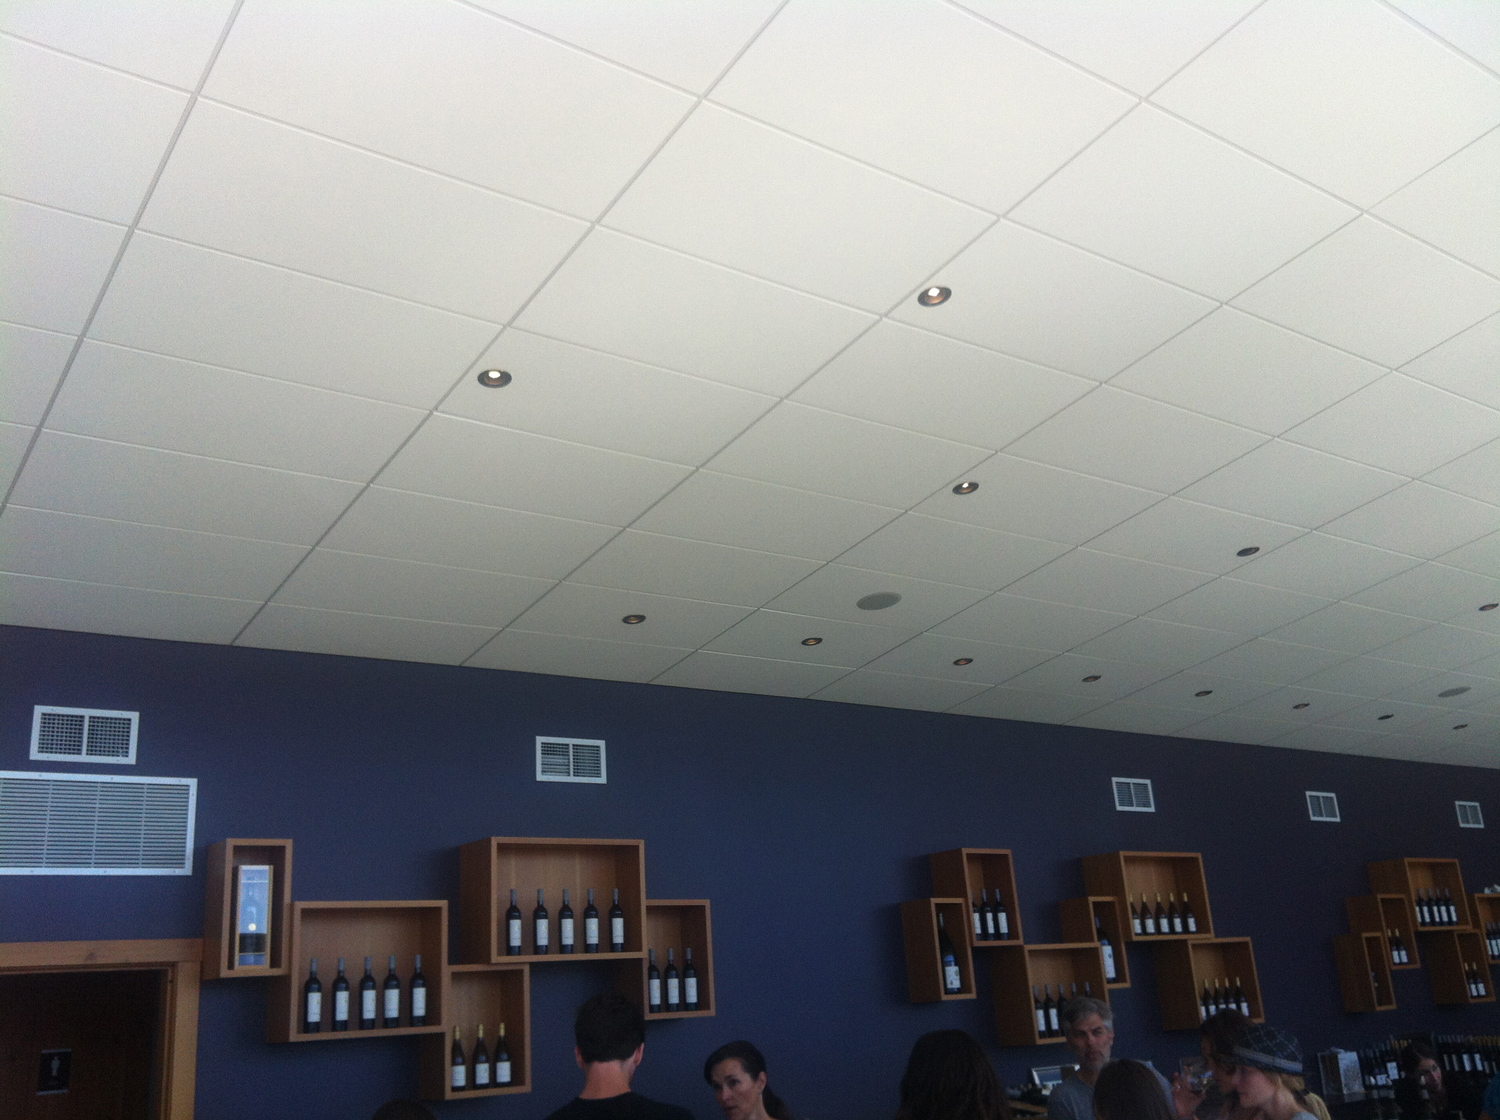 Winery ceiling acoustic treatment